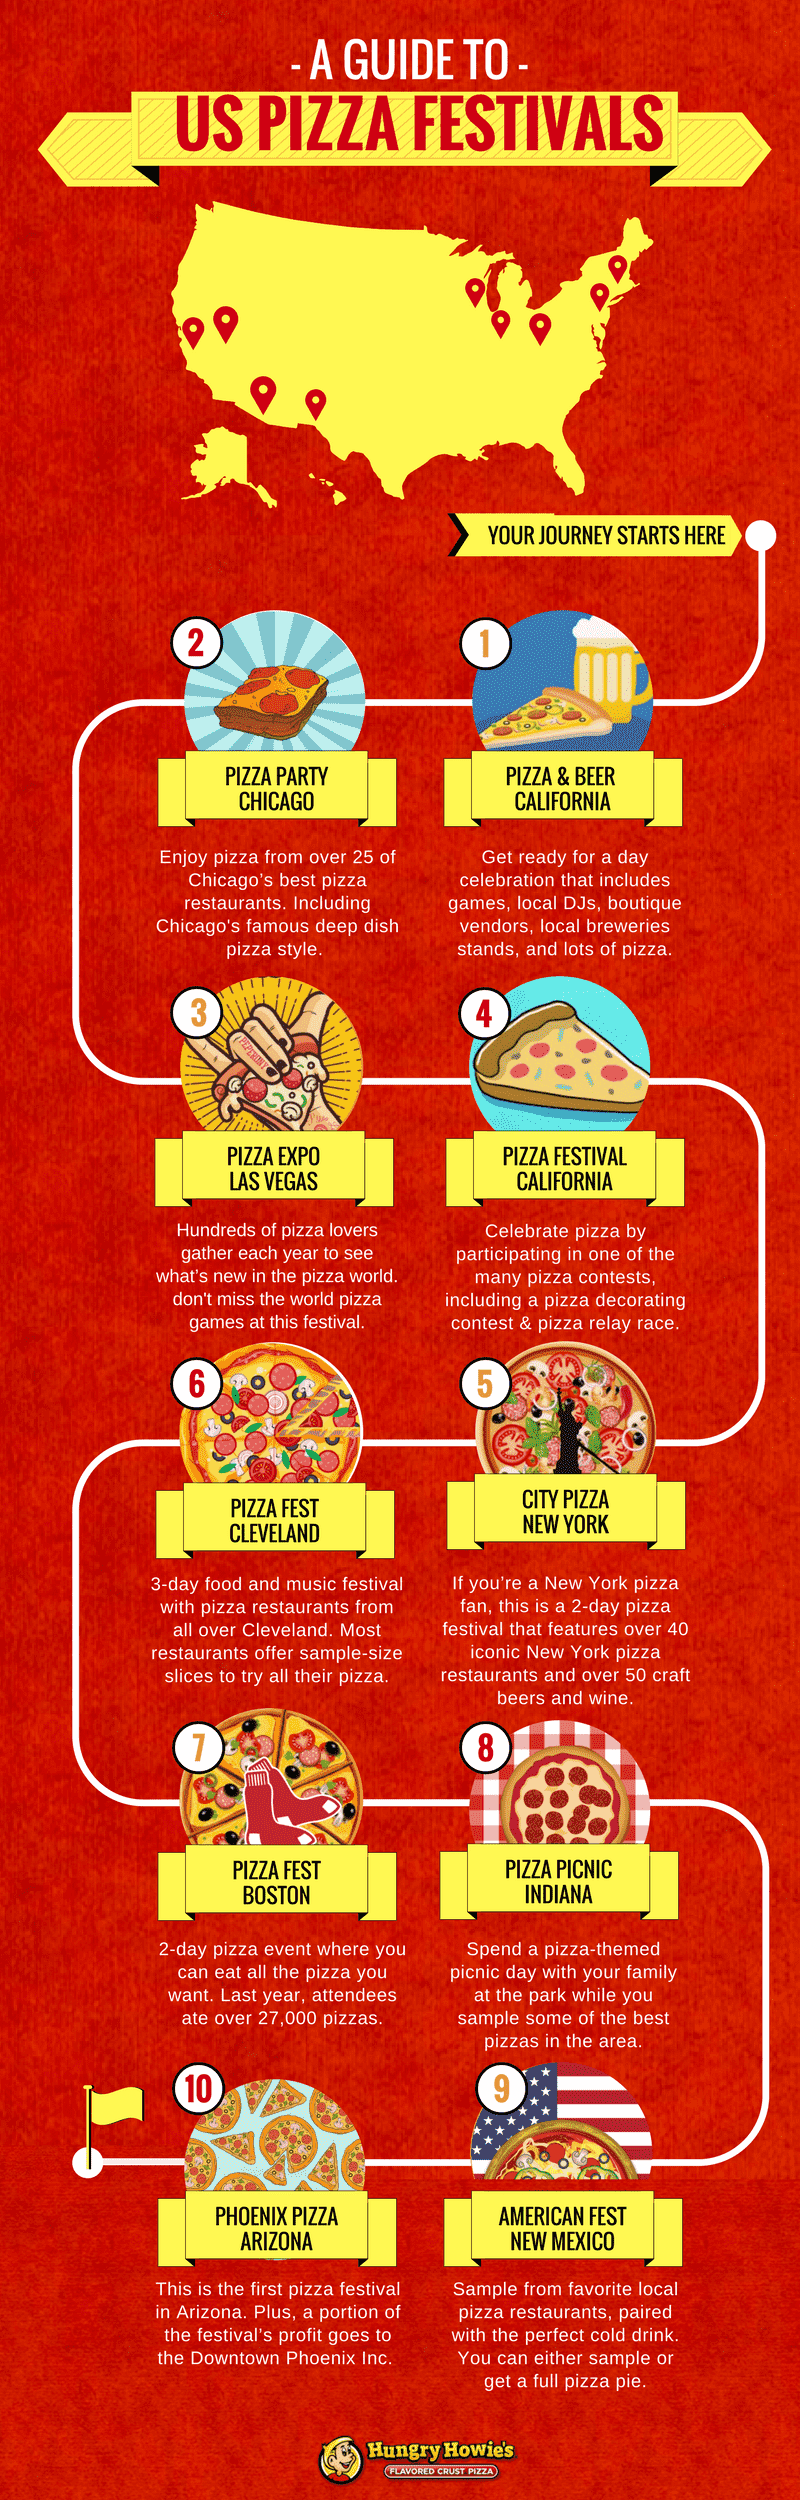 Best Pizza Festivals in the US